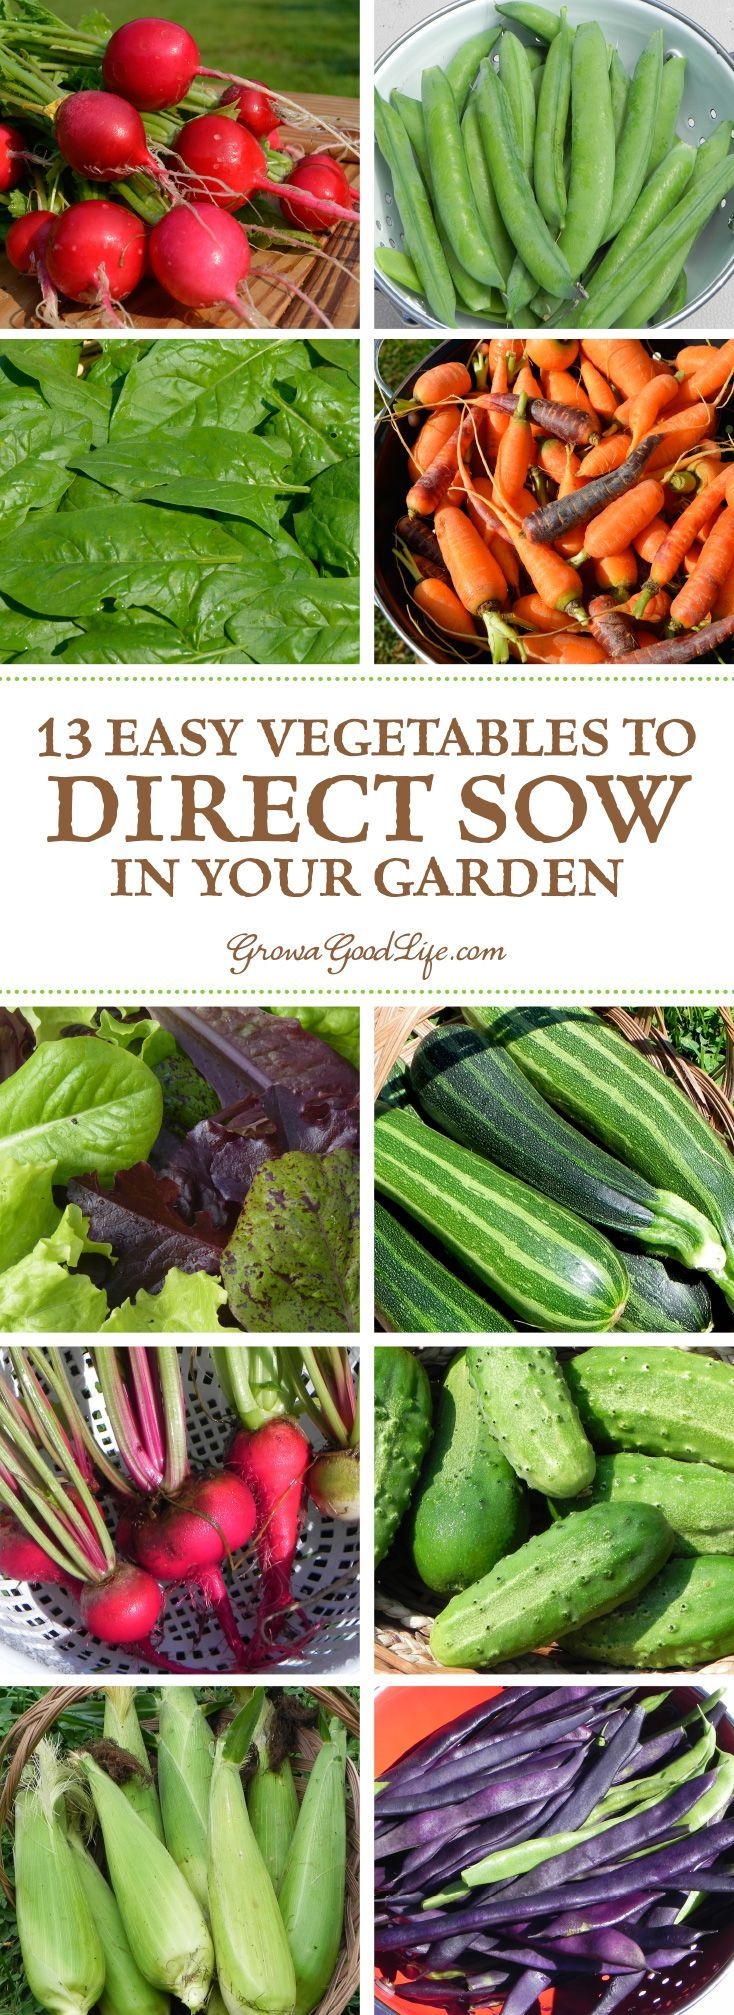 To Direct Sow Your Seeds Just Means Plant Outdoors In The Garden Where